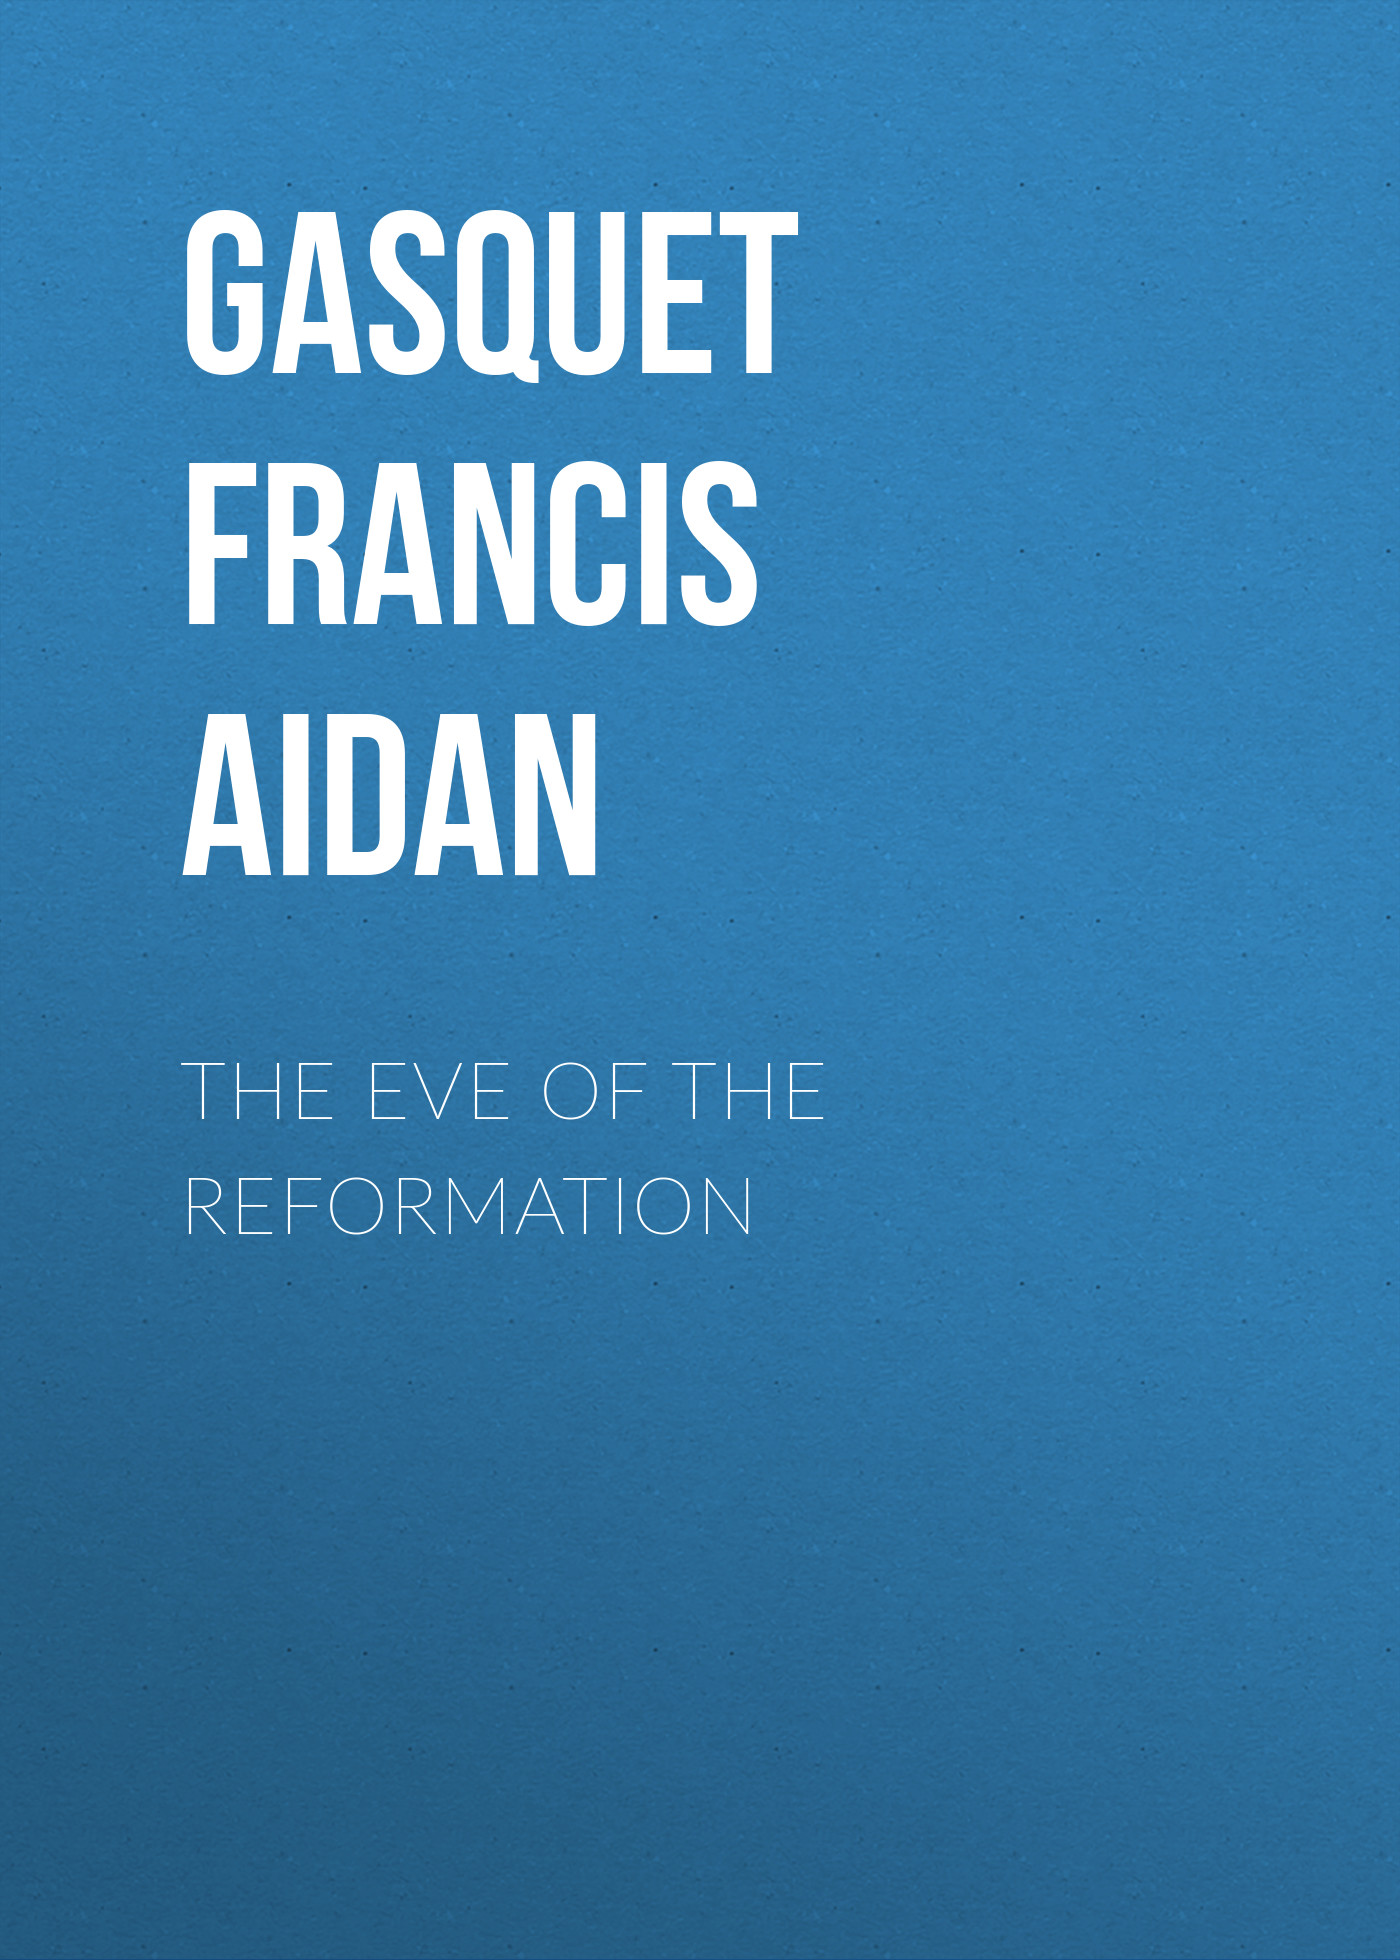 Gasquet Francis Aidan The Eve of the Reformation c dixon scott contesting the reformation isbn 9781118272282